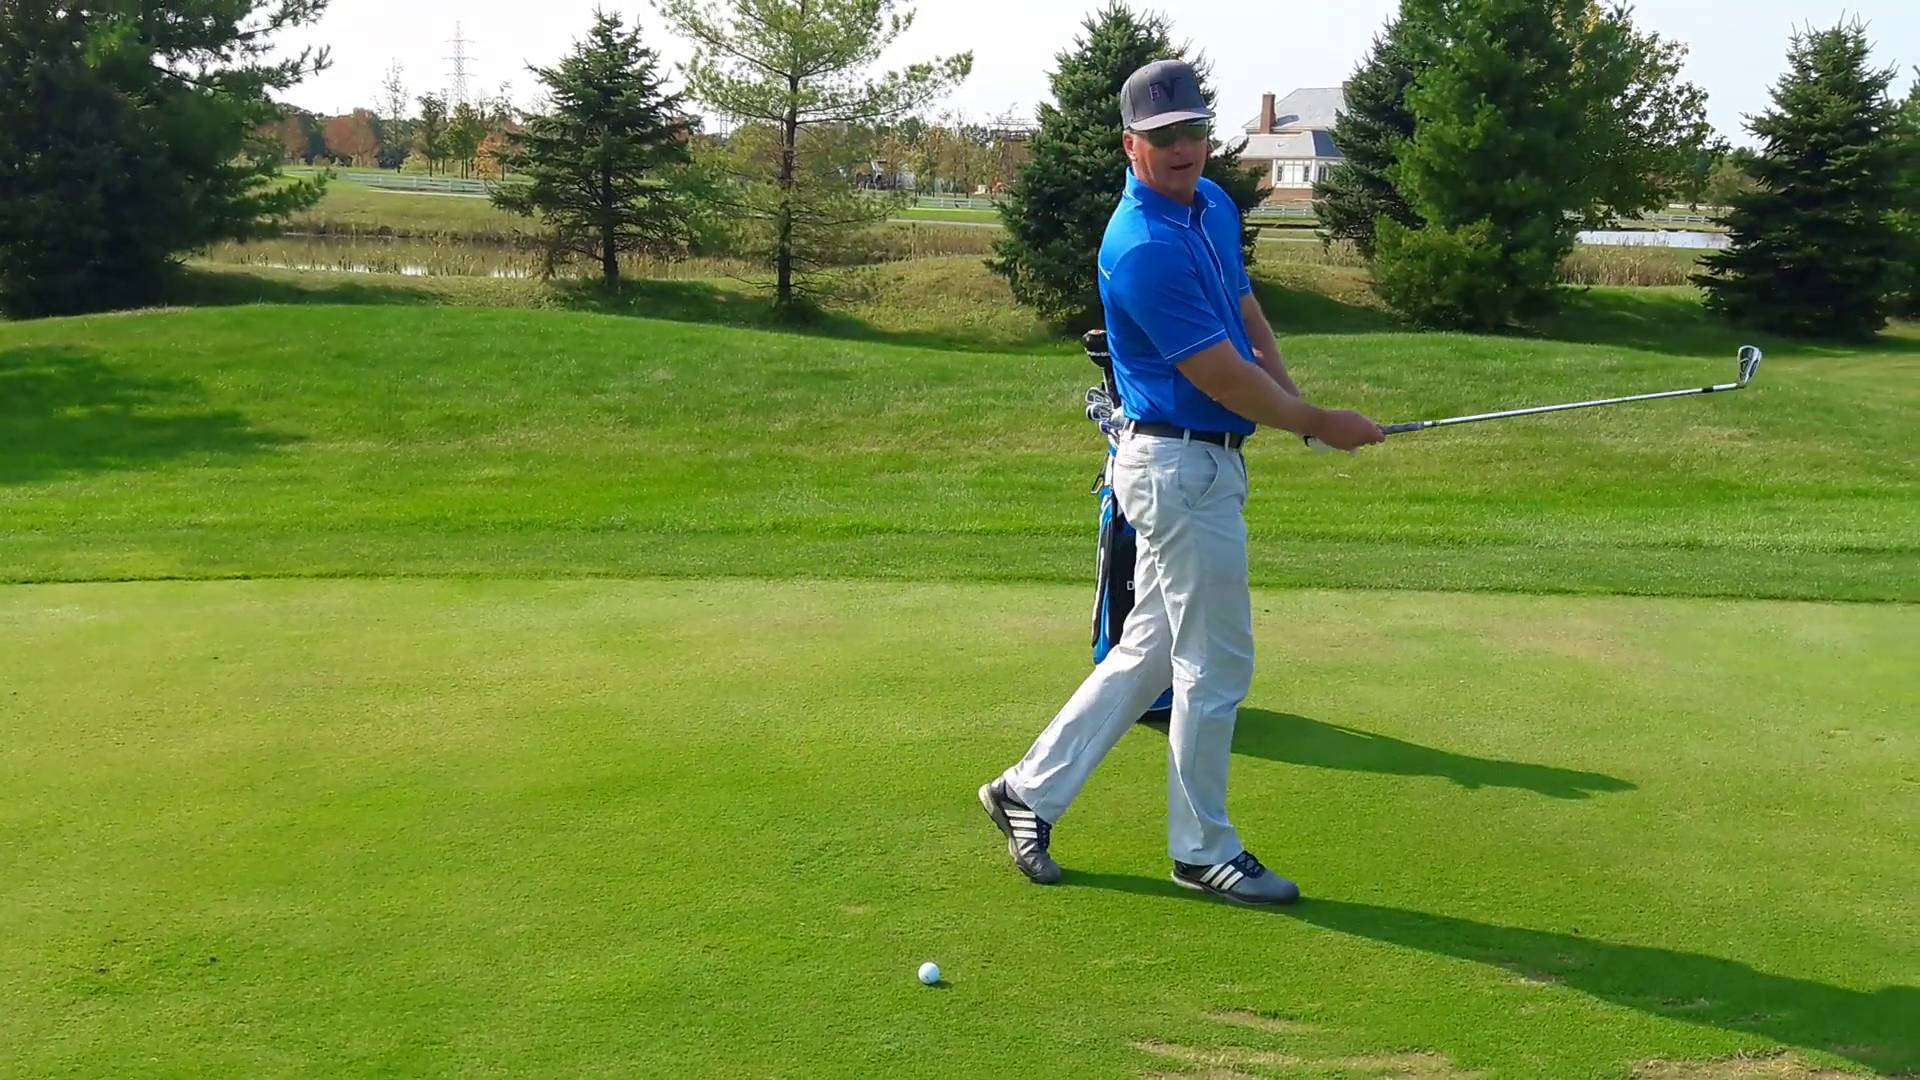 Practice Stepping Through the Shot to Perfect Weight Shift